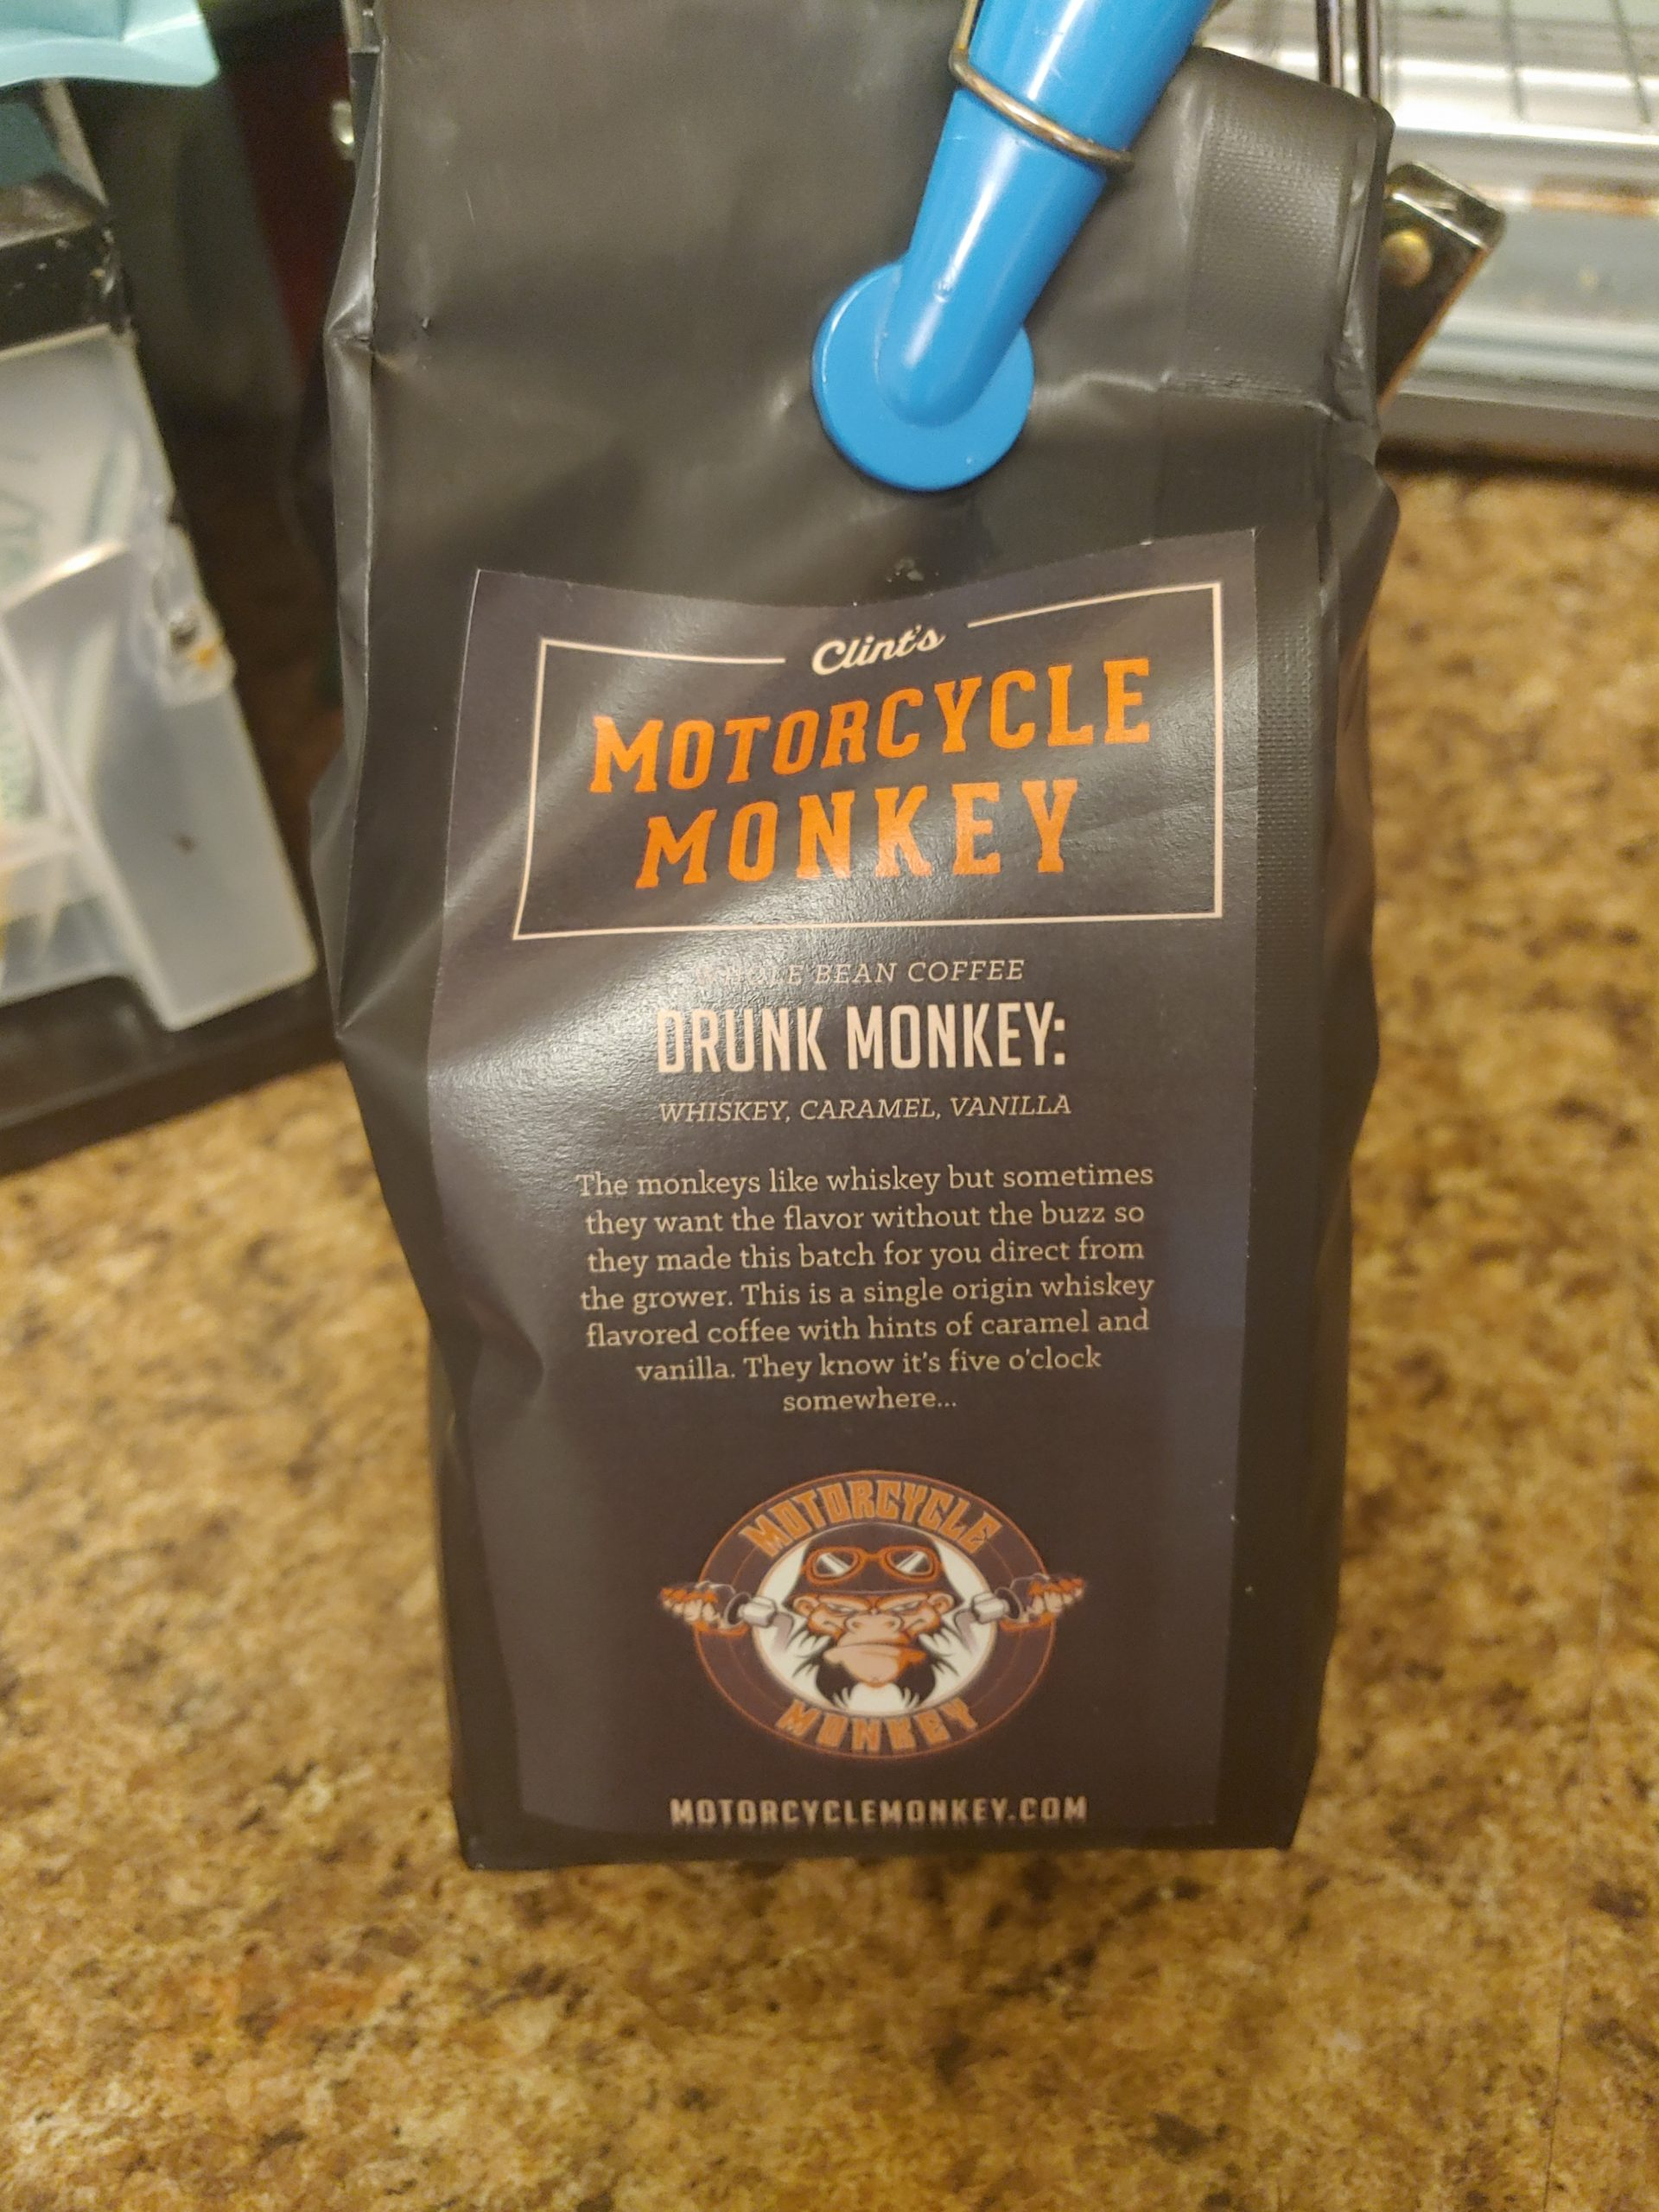 Clint's Motorcycle Monkey Coffee